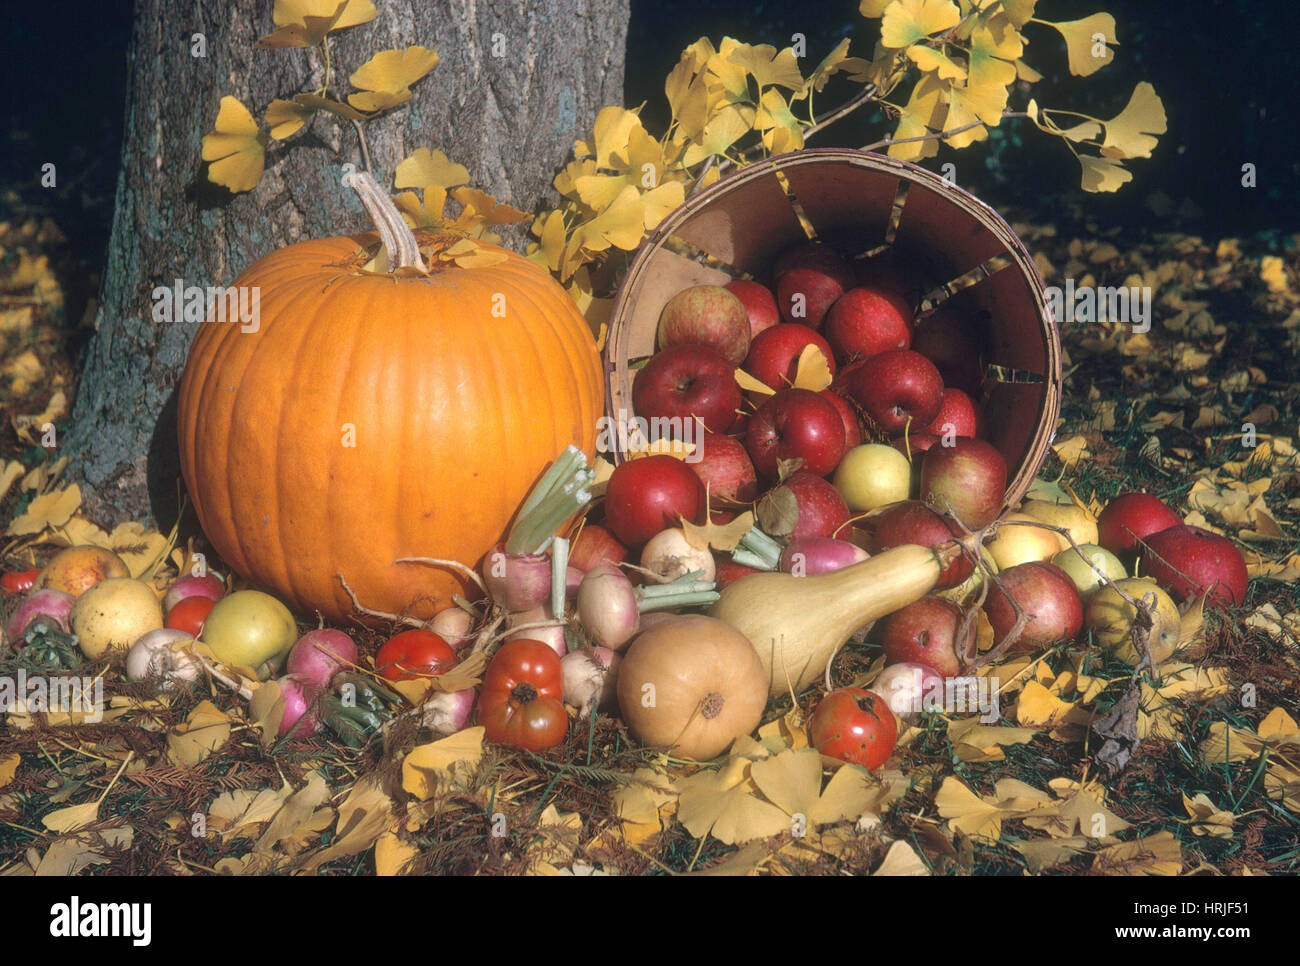 Autumn Still Life - Stock Image